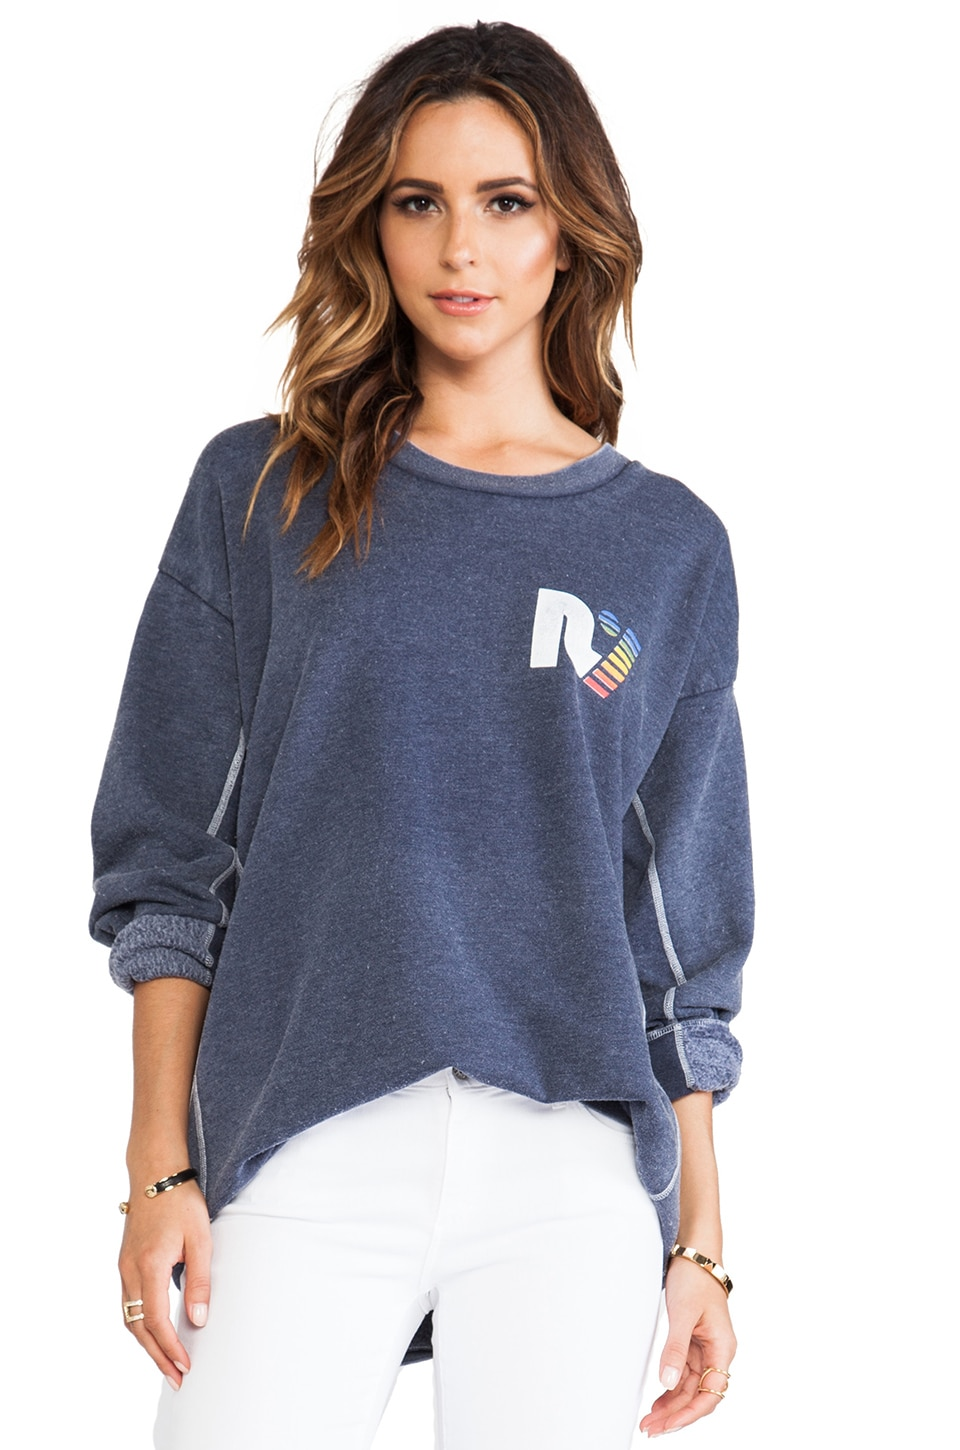 Rebel Yell x REVOLVE Strokes Warm Up Fleece in Blue Jean